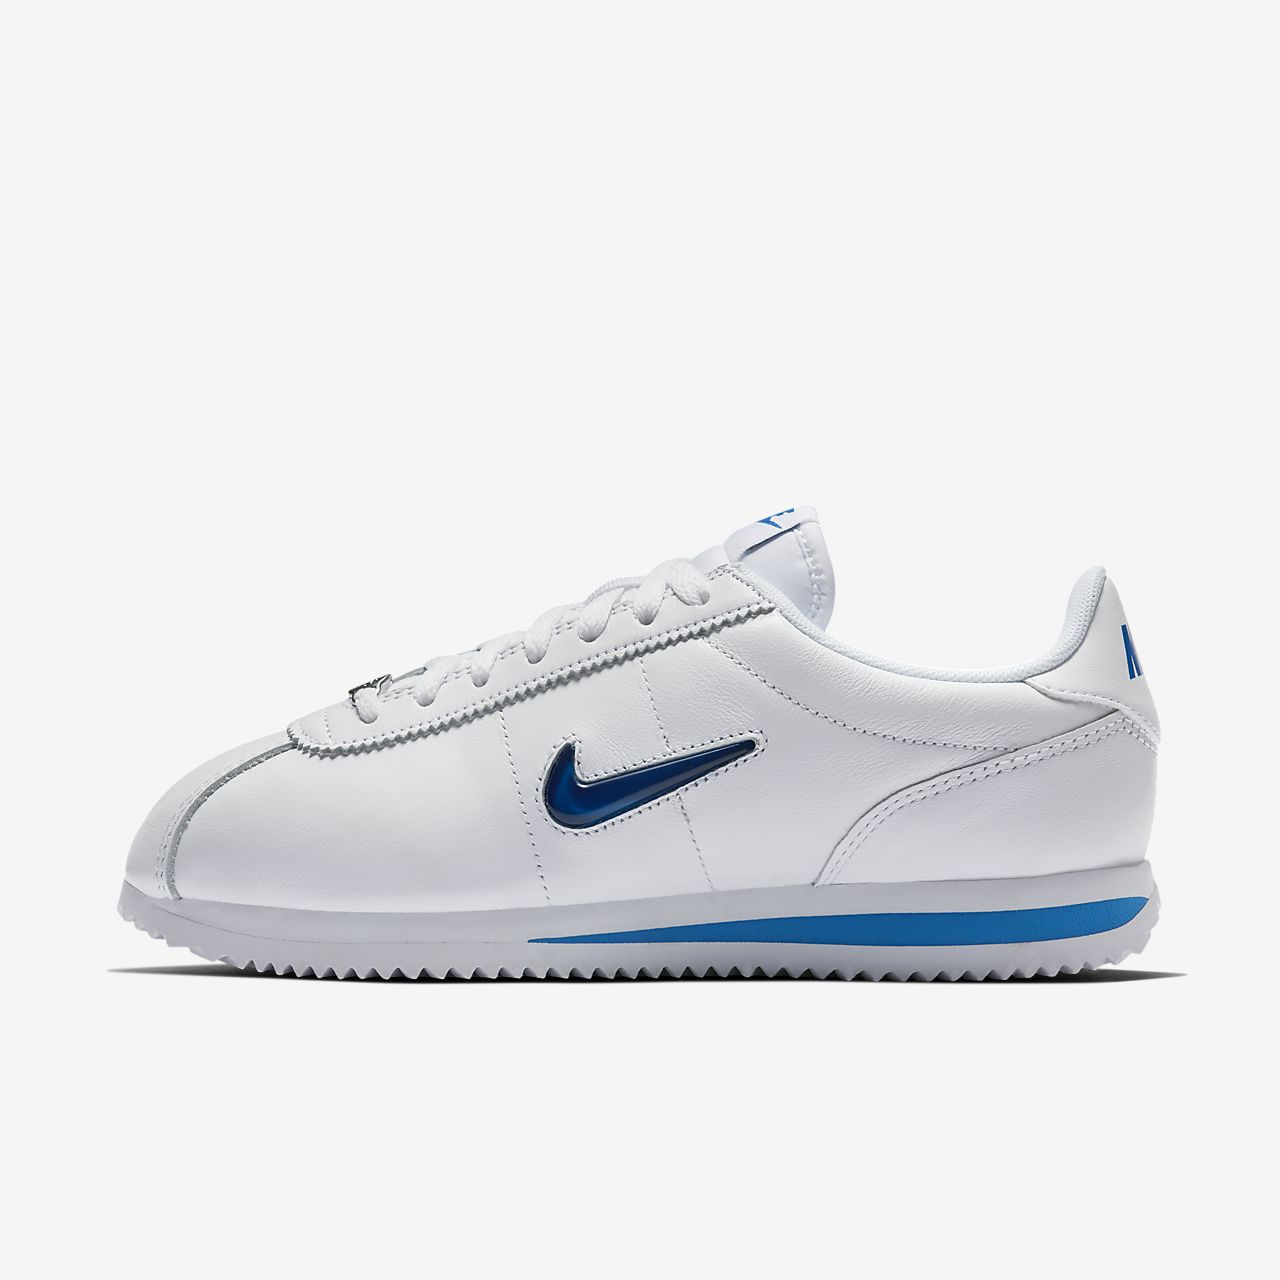 Low Resolution Nike Cortez Basic Jewel Damenschuh Nike Cortez Basic Jewel  Damenschuh